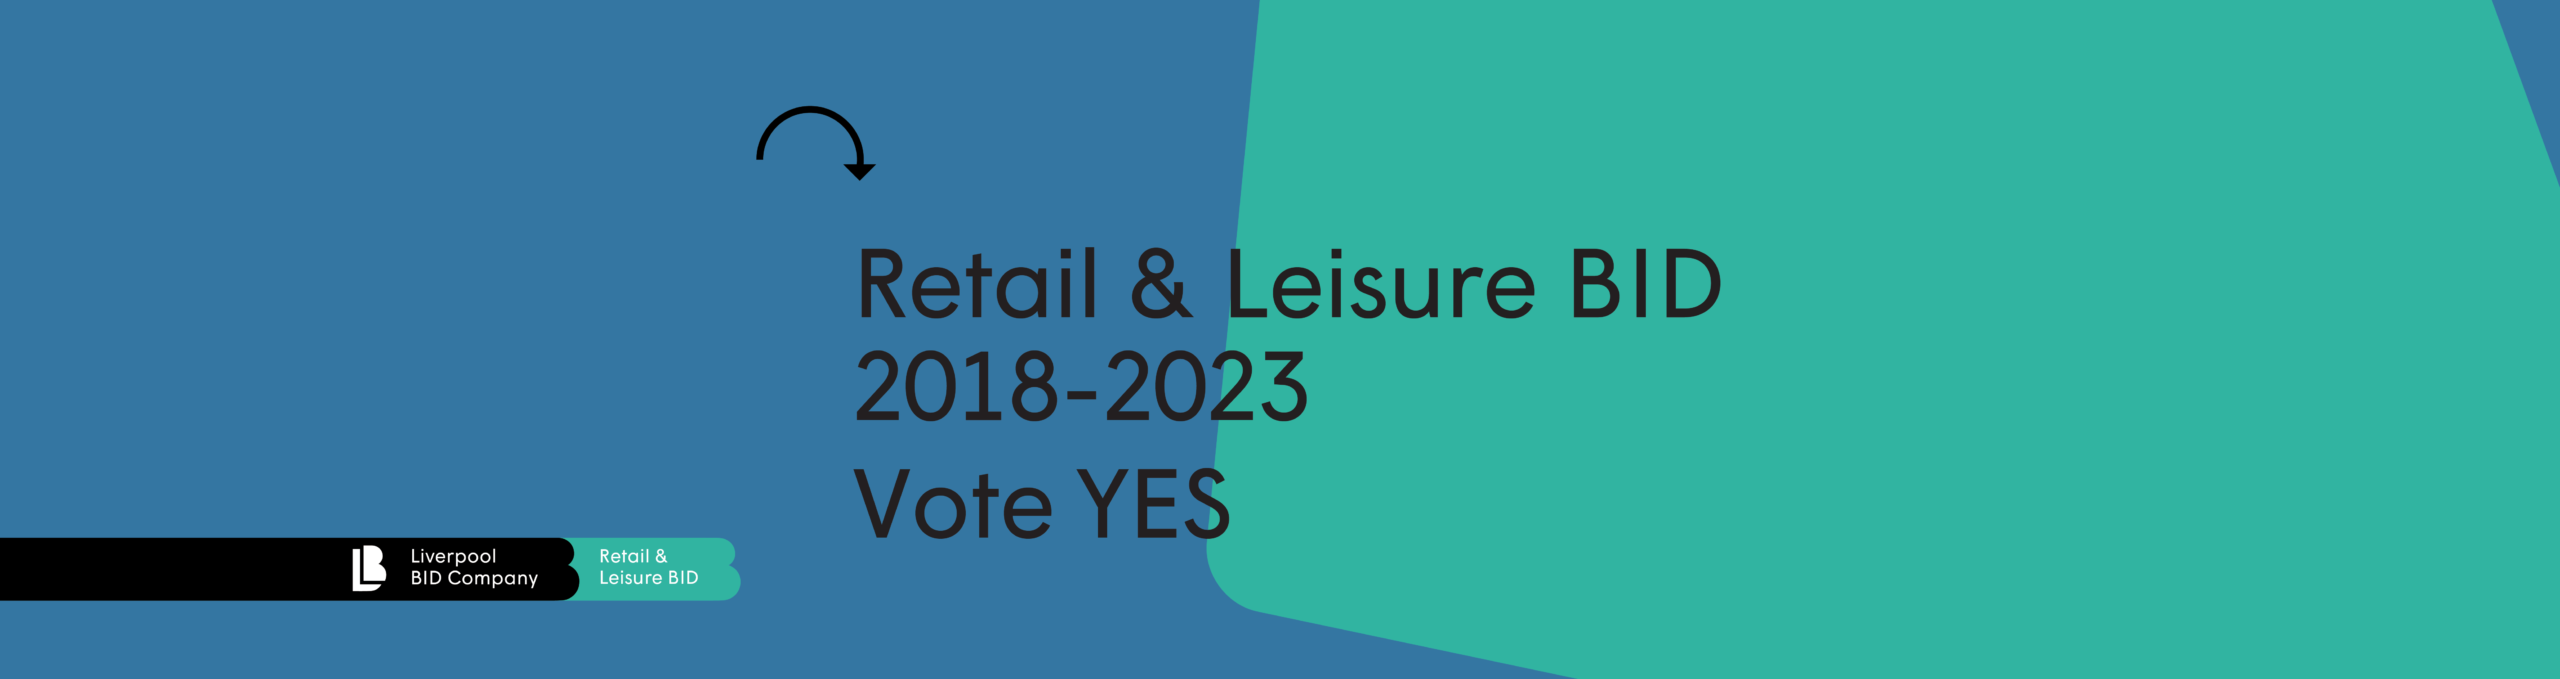 Retail & Leisure BID Ballot 2018-2023